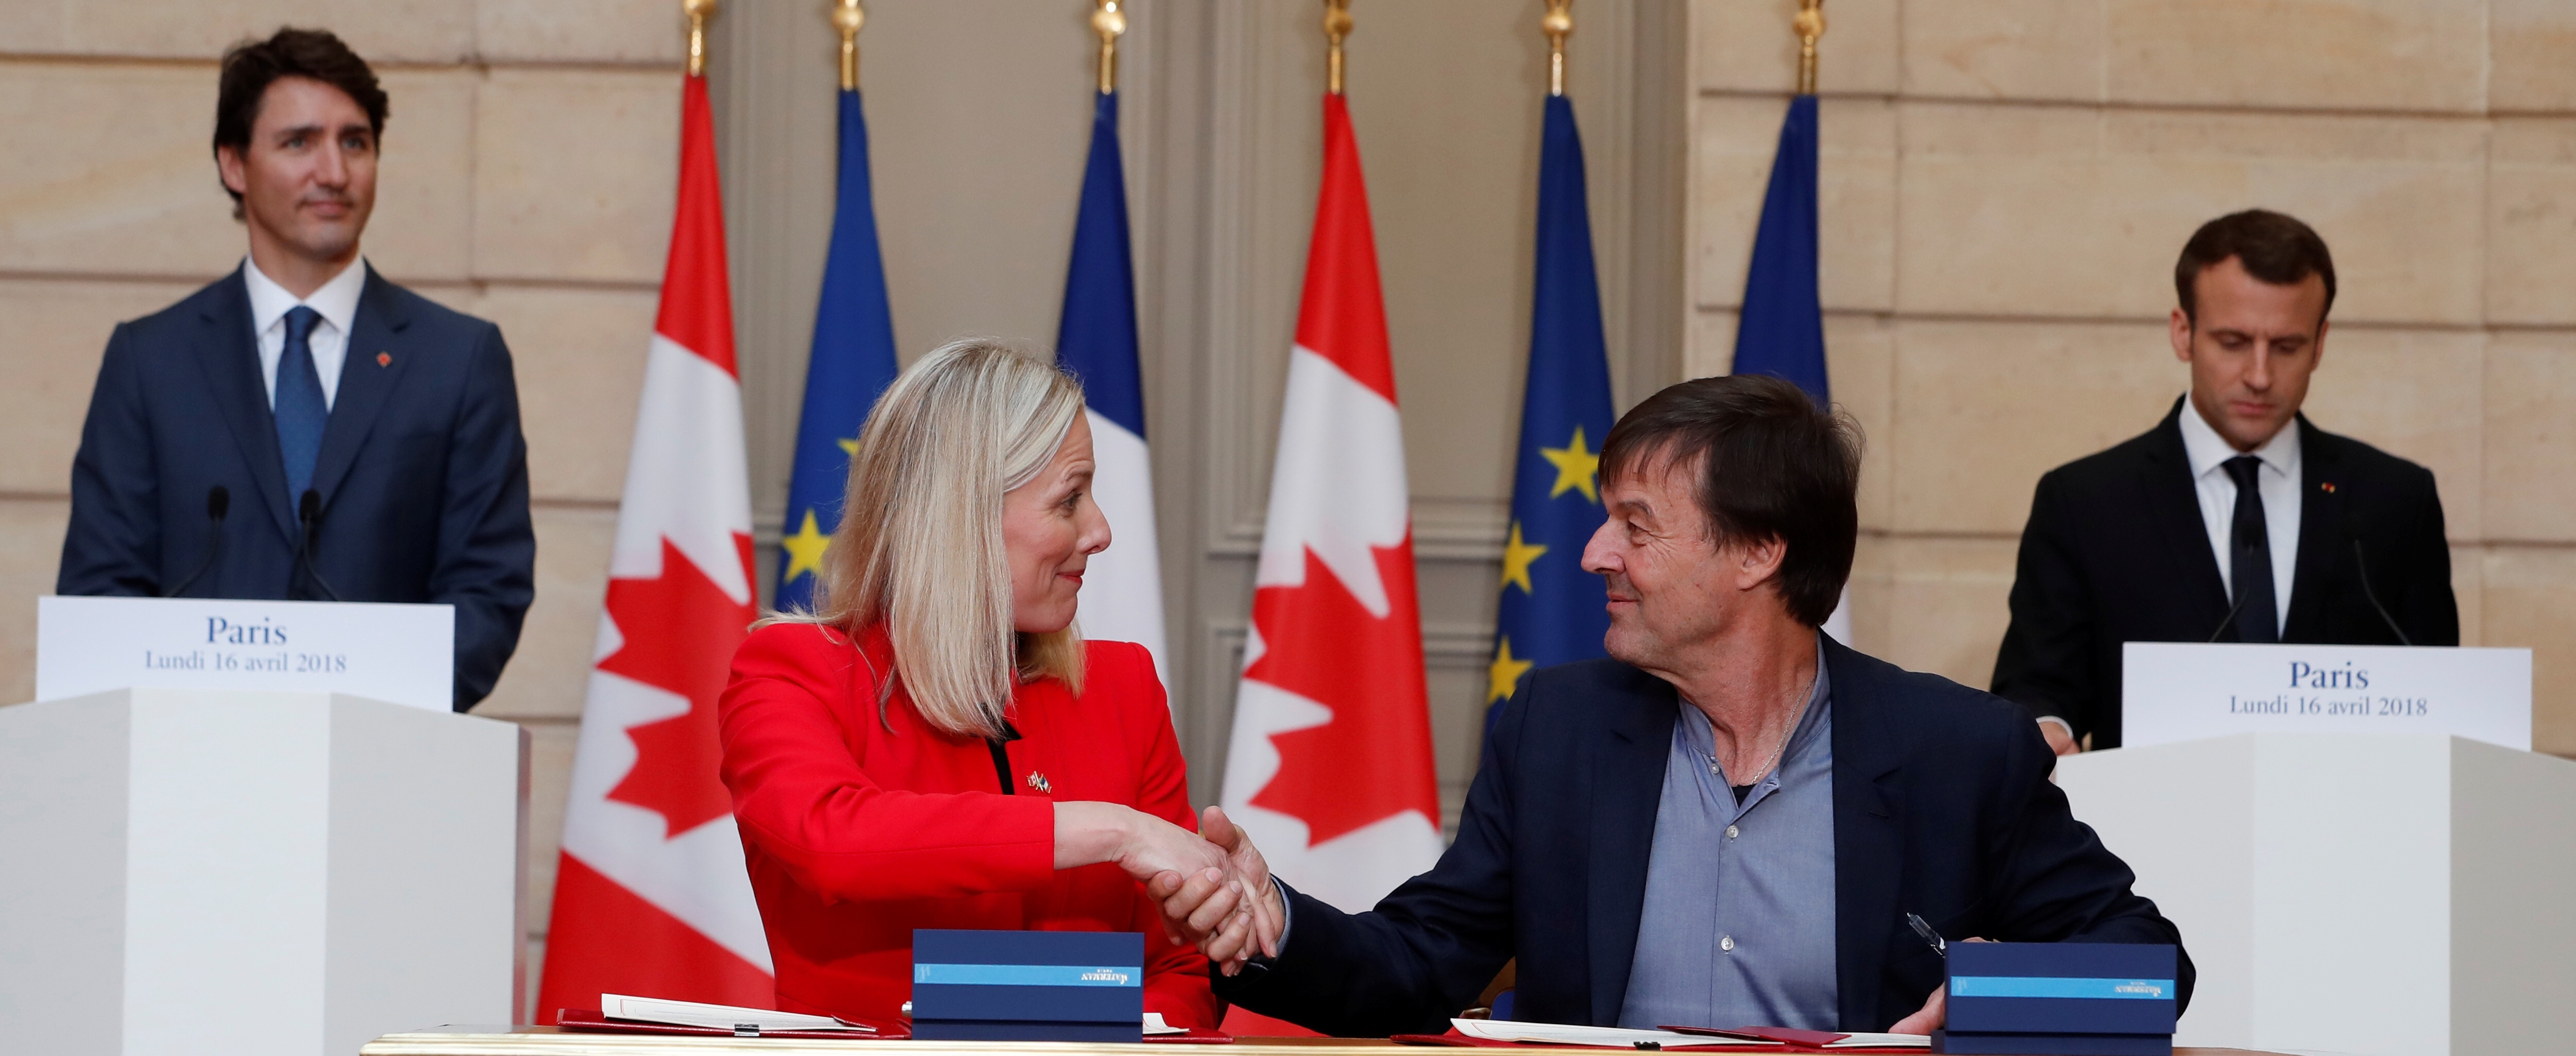 French President Emmanuel Macron (R) and Canadian Prime Minister Justin Trudeau (L) appaud as French minister of Ecology Nicolas Hulot (2ndR) and Canadian counterpart Catherine McKenna (2ndL) sign a ecology treaty at the Elysee Palace in Paris, France, April 16, 2018. Ian Langsdon/Pool via Reuters - RC19F7E98420